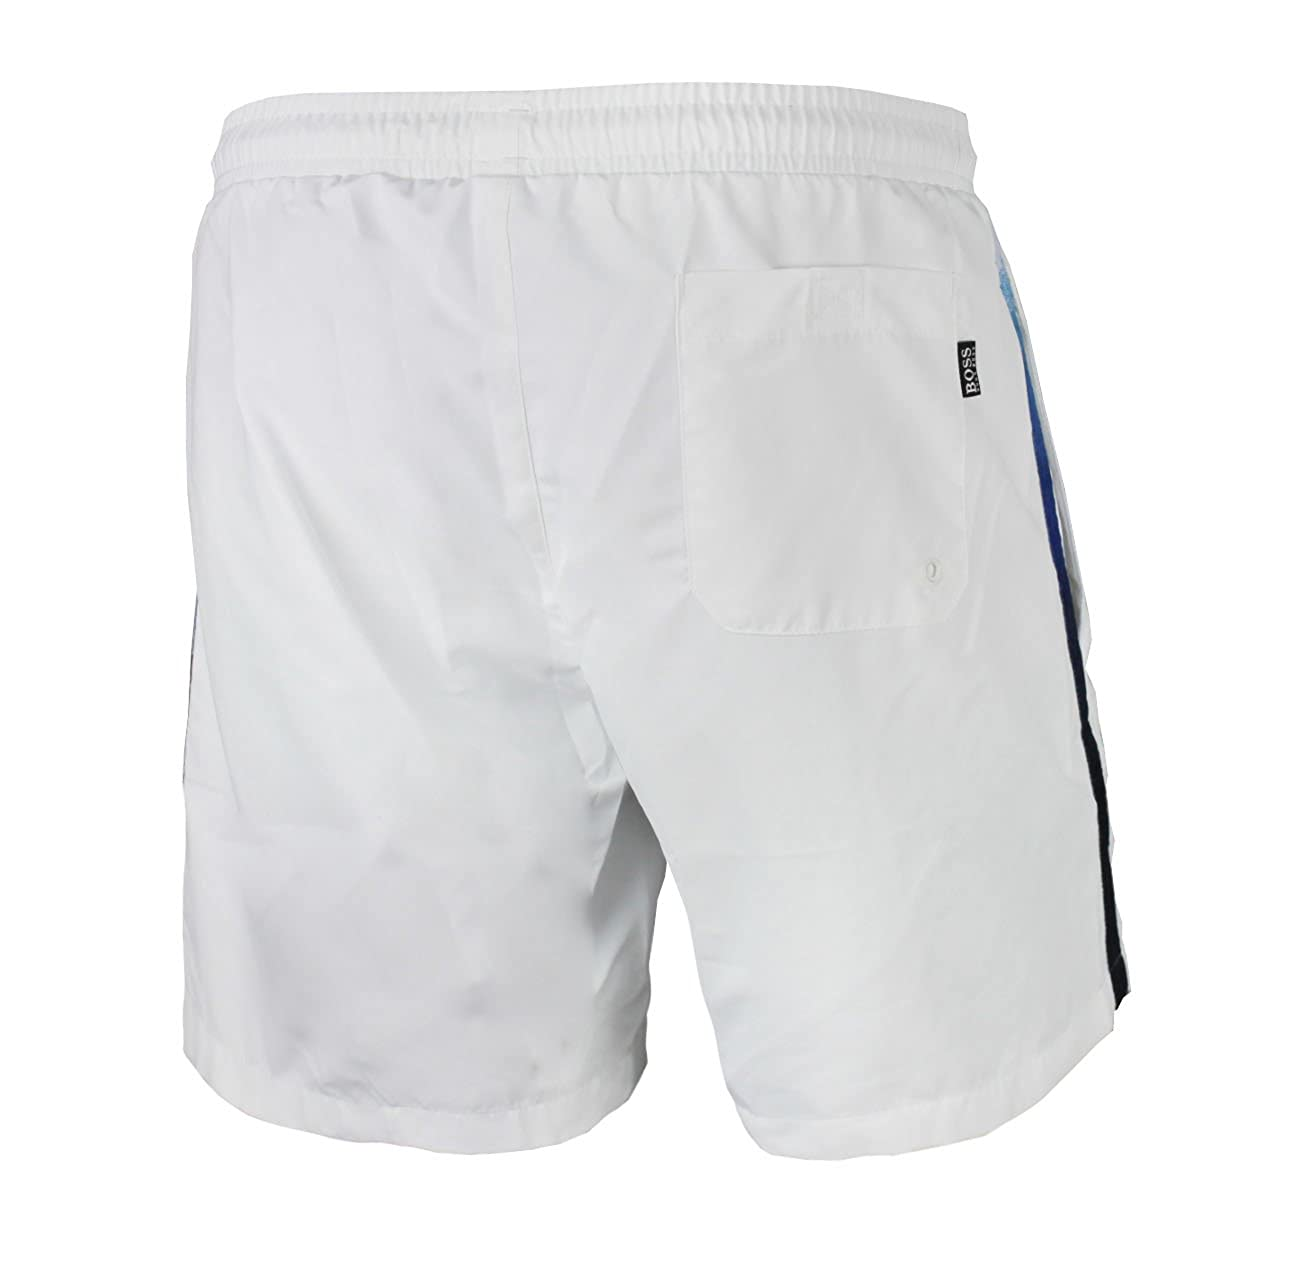 6a51d193da ... Hugo Boss Swimtrunks Seabream 50317663 Swim Trunks White ...